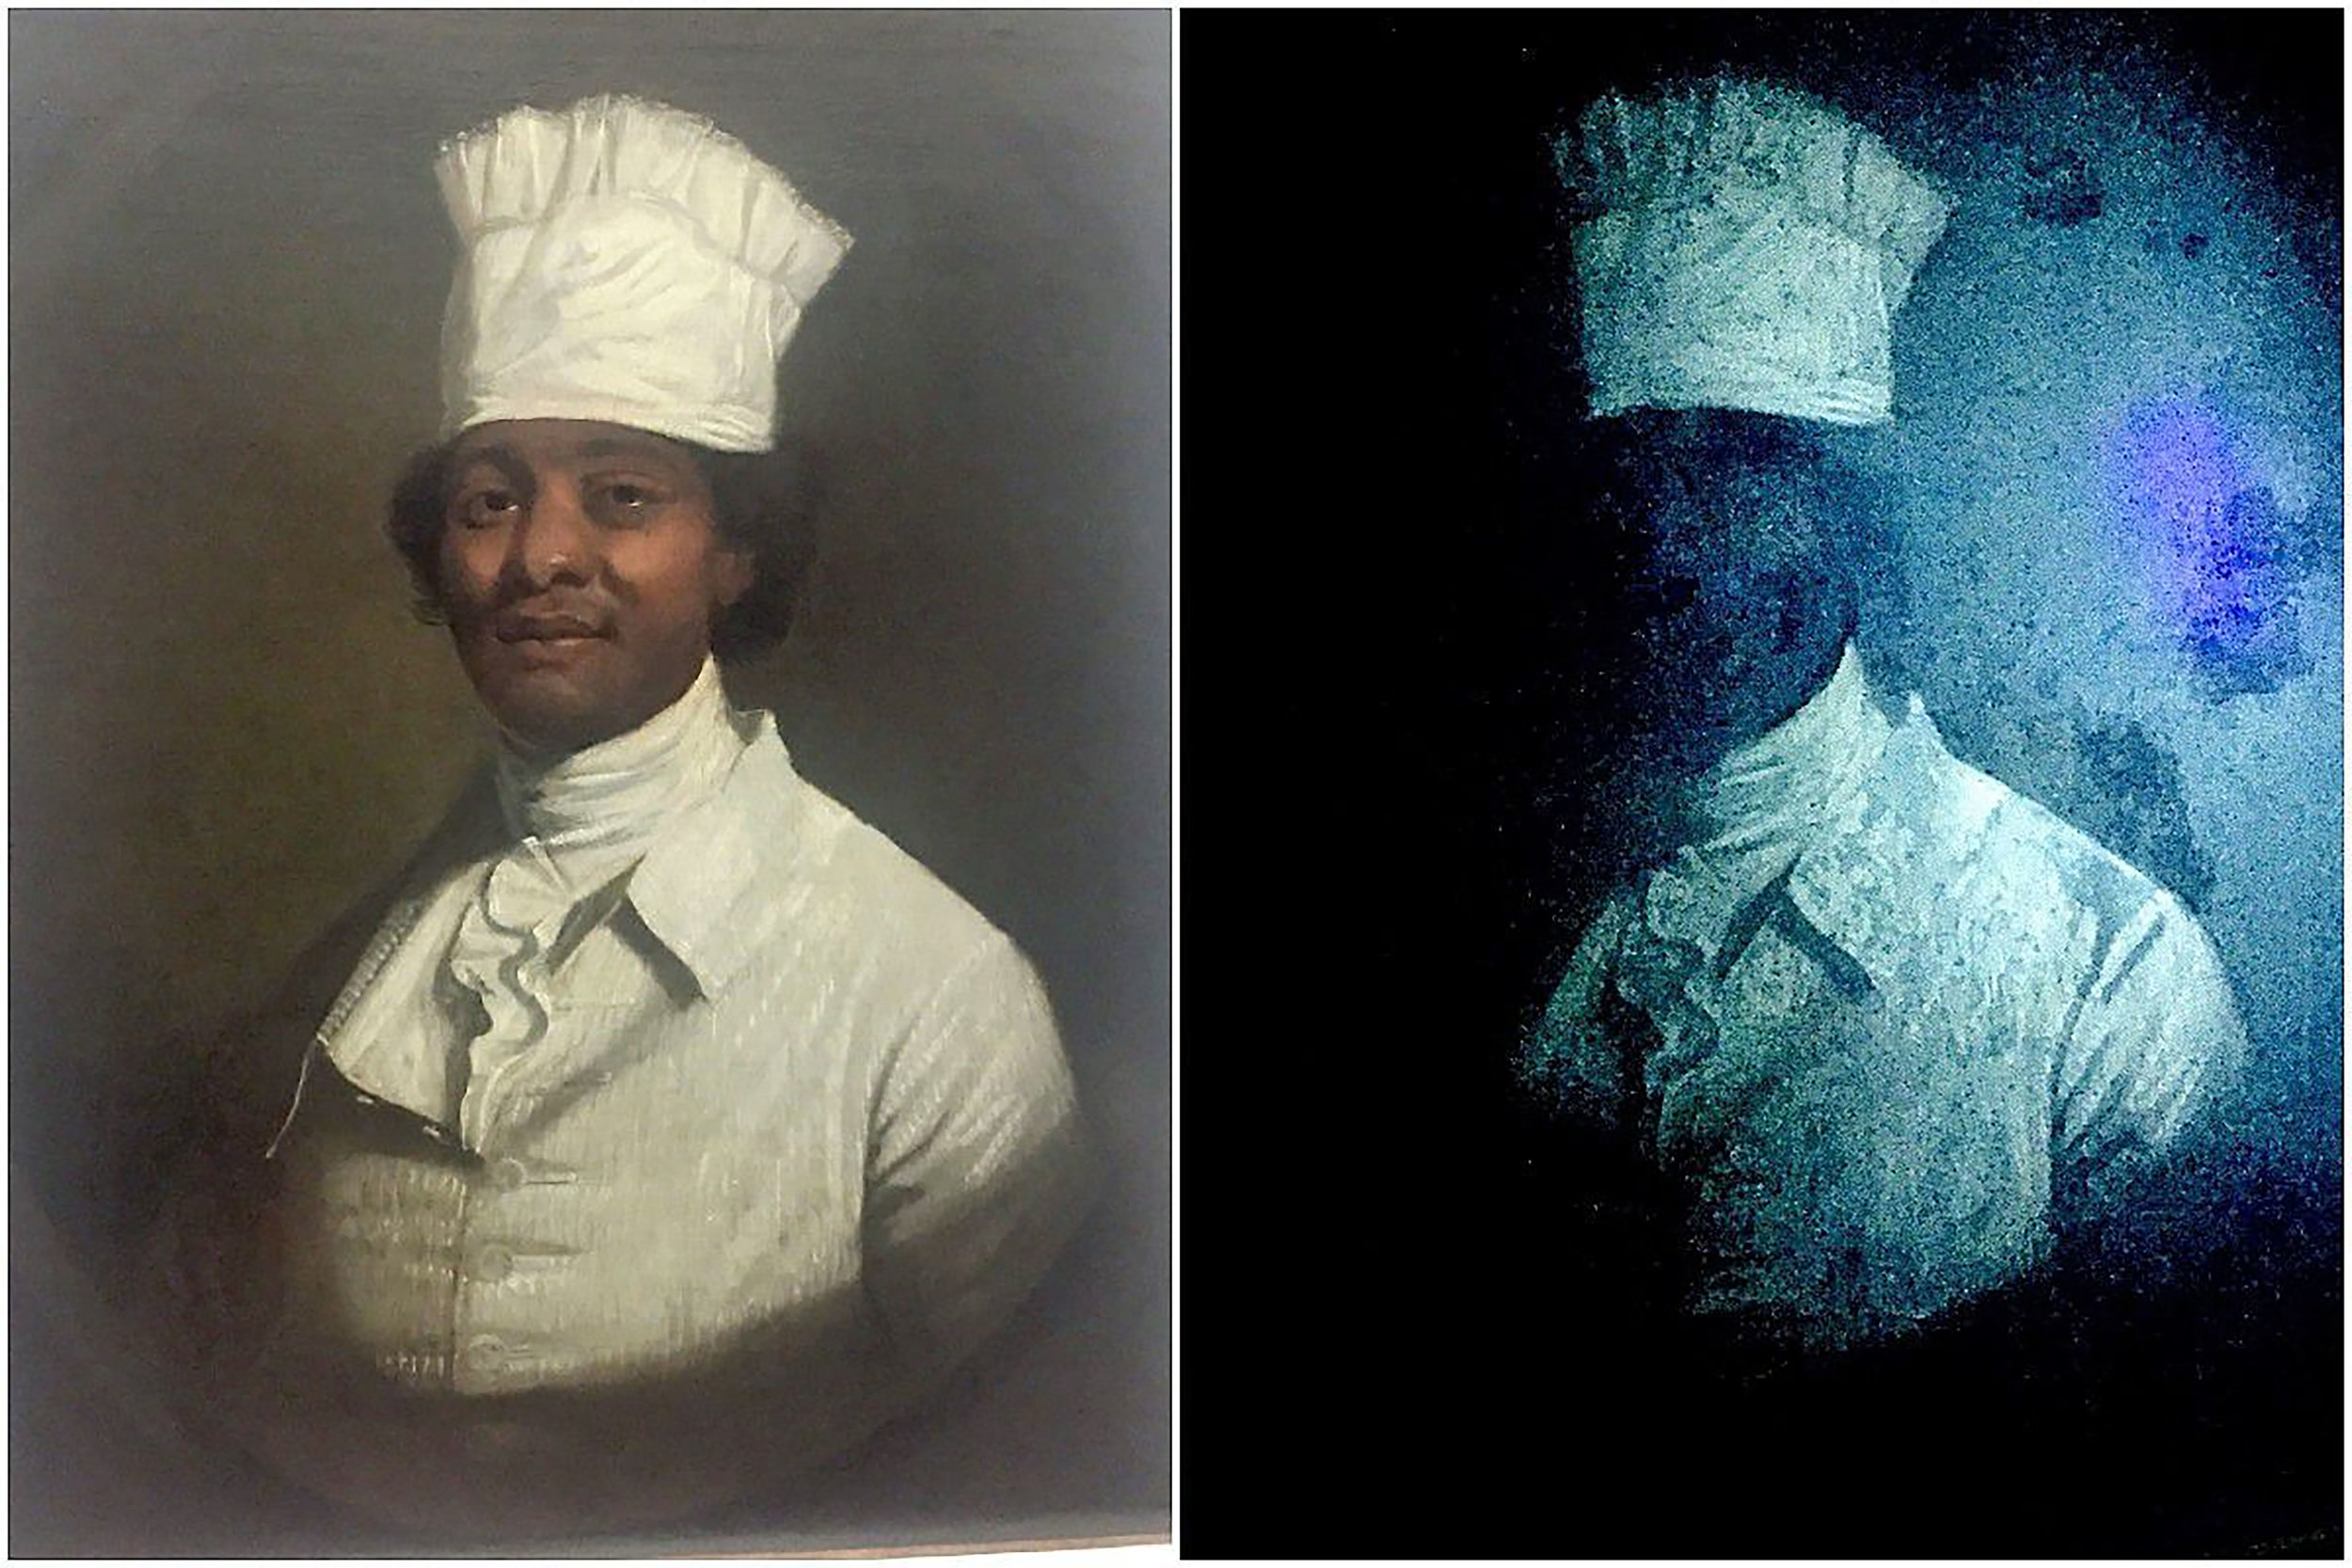 Craig LaBan, Philadelphia Inquirer  This painting was long believed to be a portrait of chef Hercules, supposedly painted by Gilbert Stuart. Those attributions have recently been dismissed by experts, and the both subject and painter are now unknown.